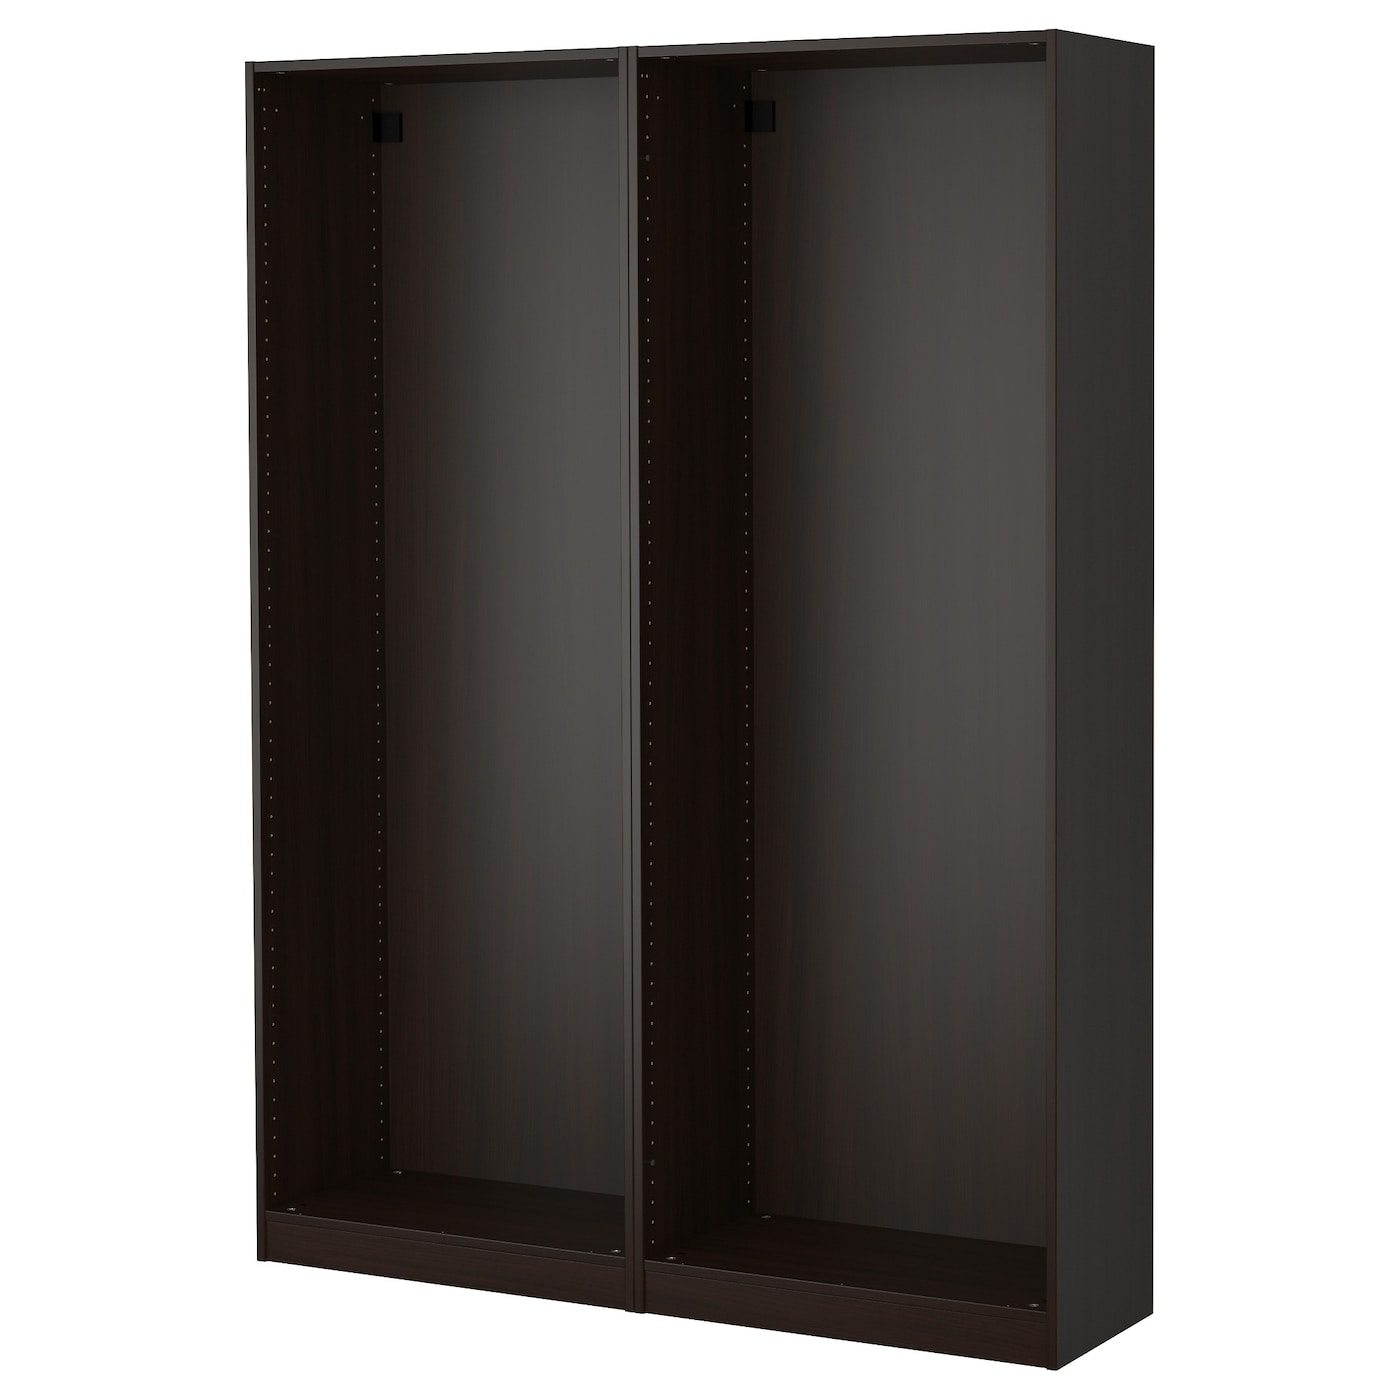 PAX 2 wardrobe frames Black brown 150x35x201 cm IKEA